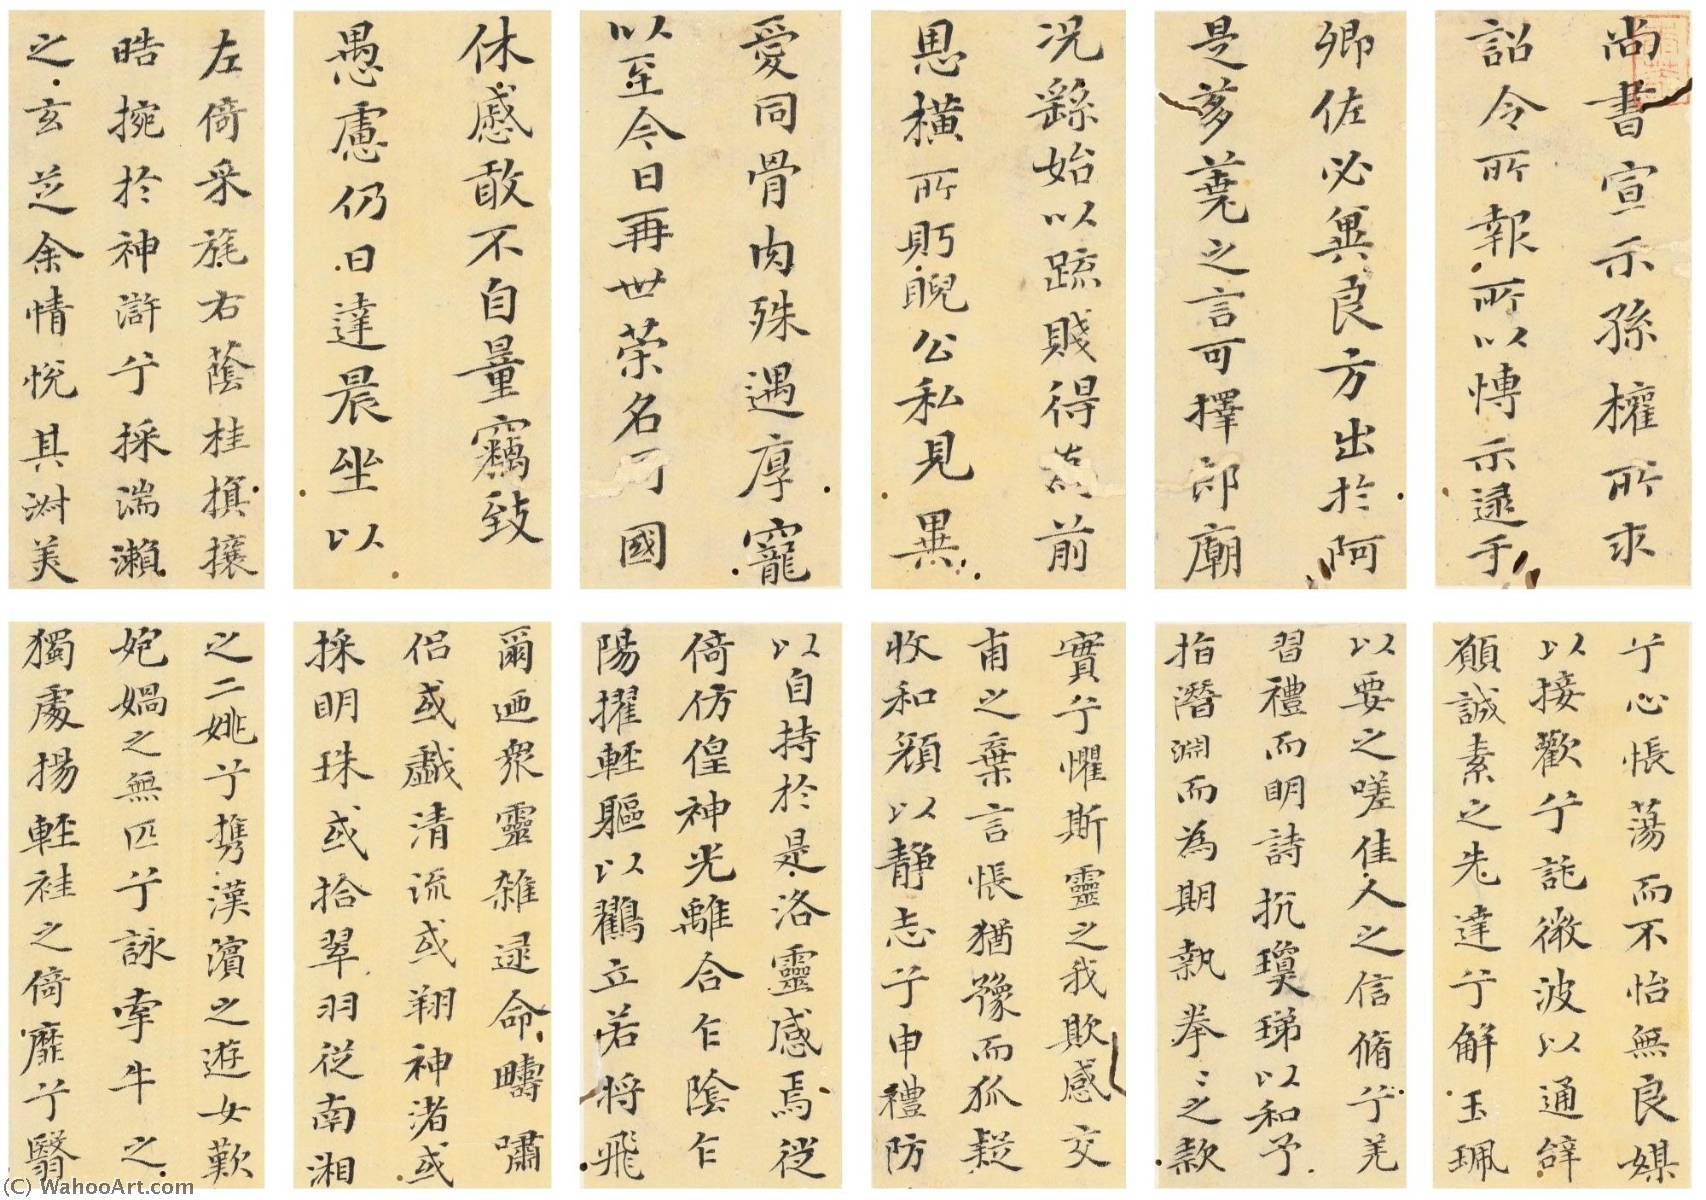 CALLIGRAPHY AFTER JIN AND TANG MASTERS, Ink by Yun Shouping (1633-1690)